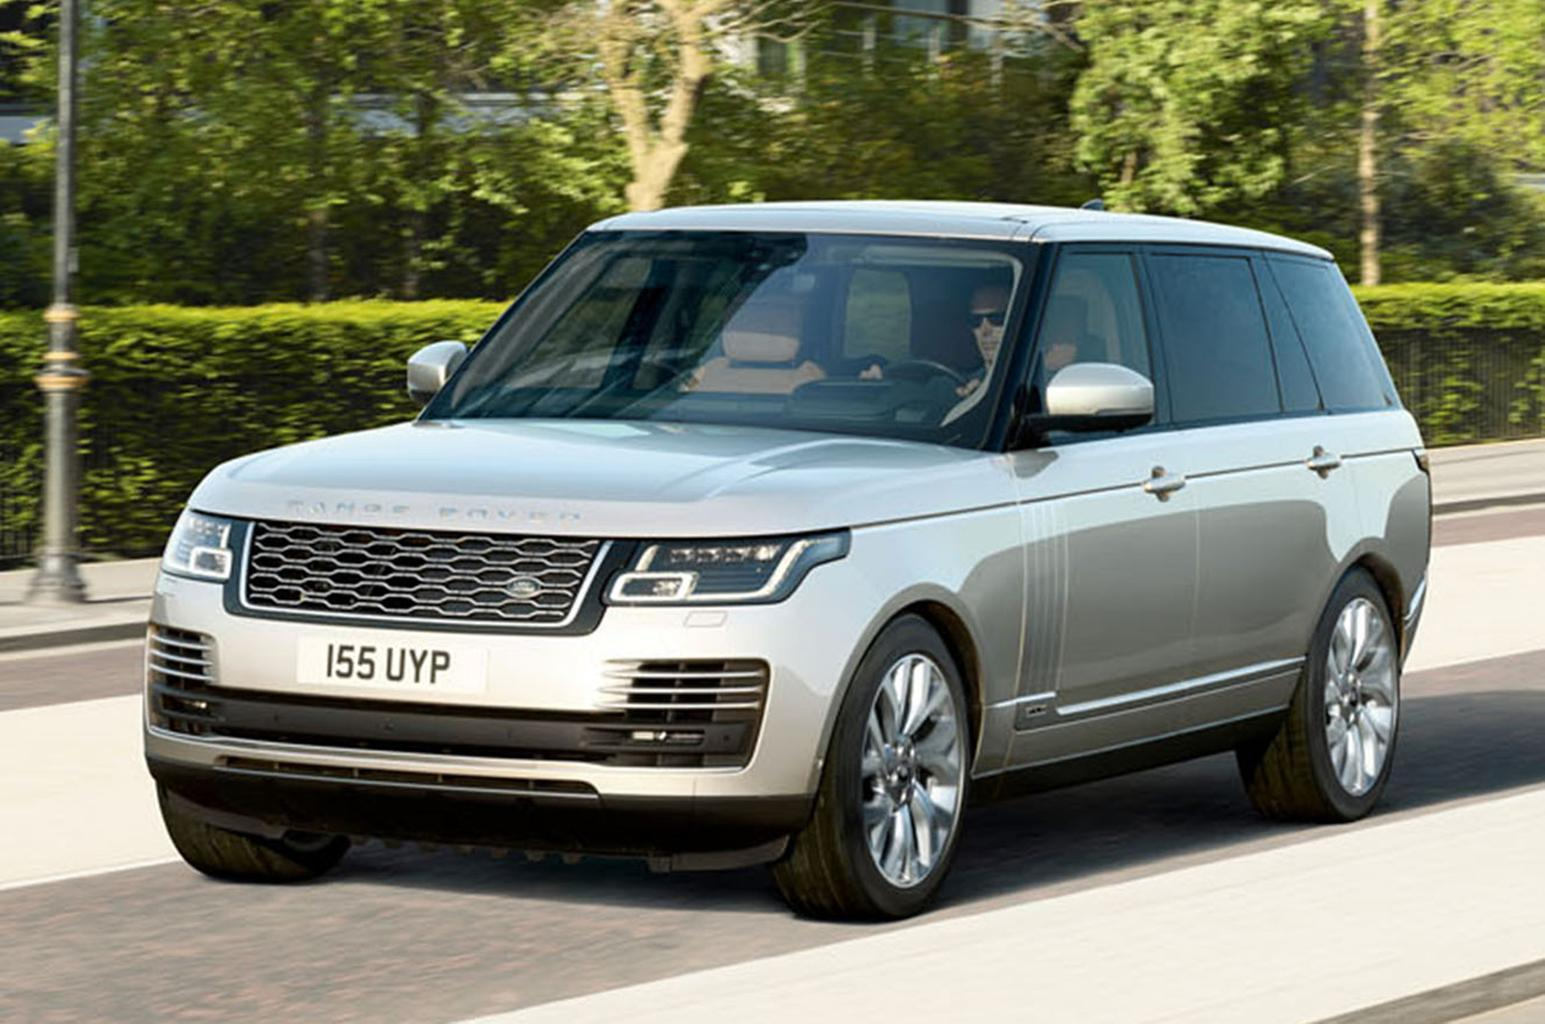 2018 Range Rover facelift – price, specs and release date